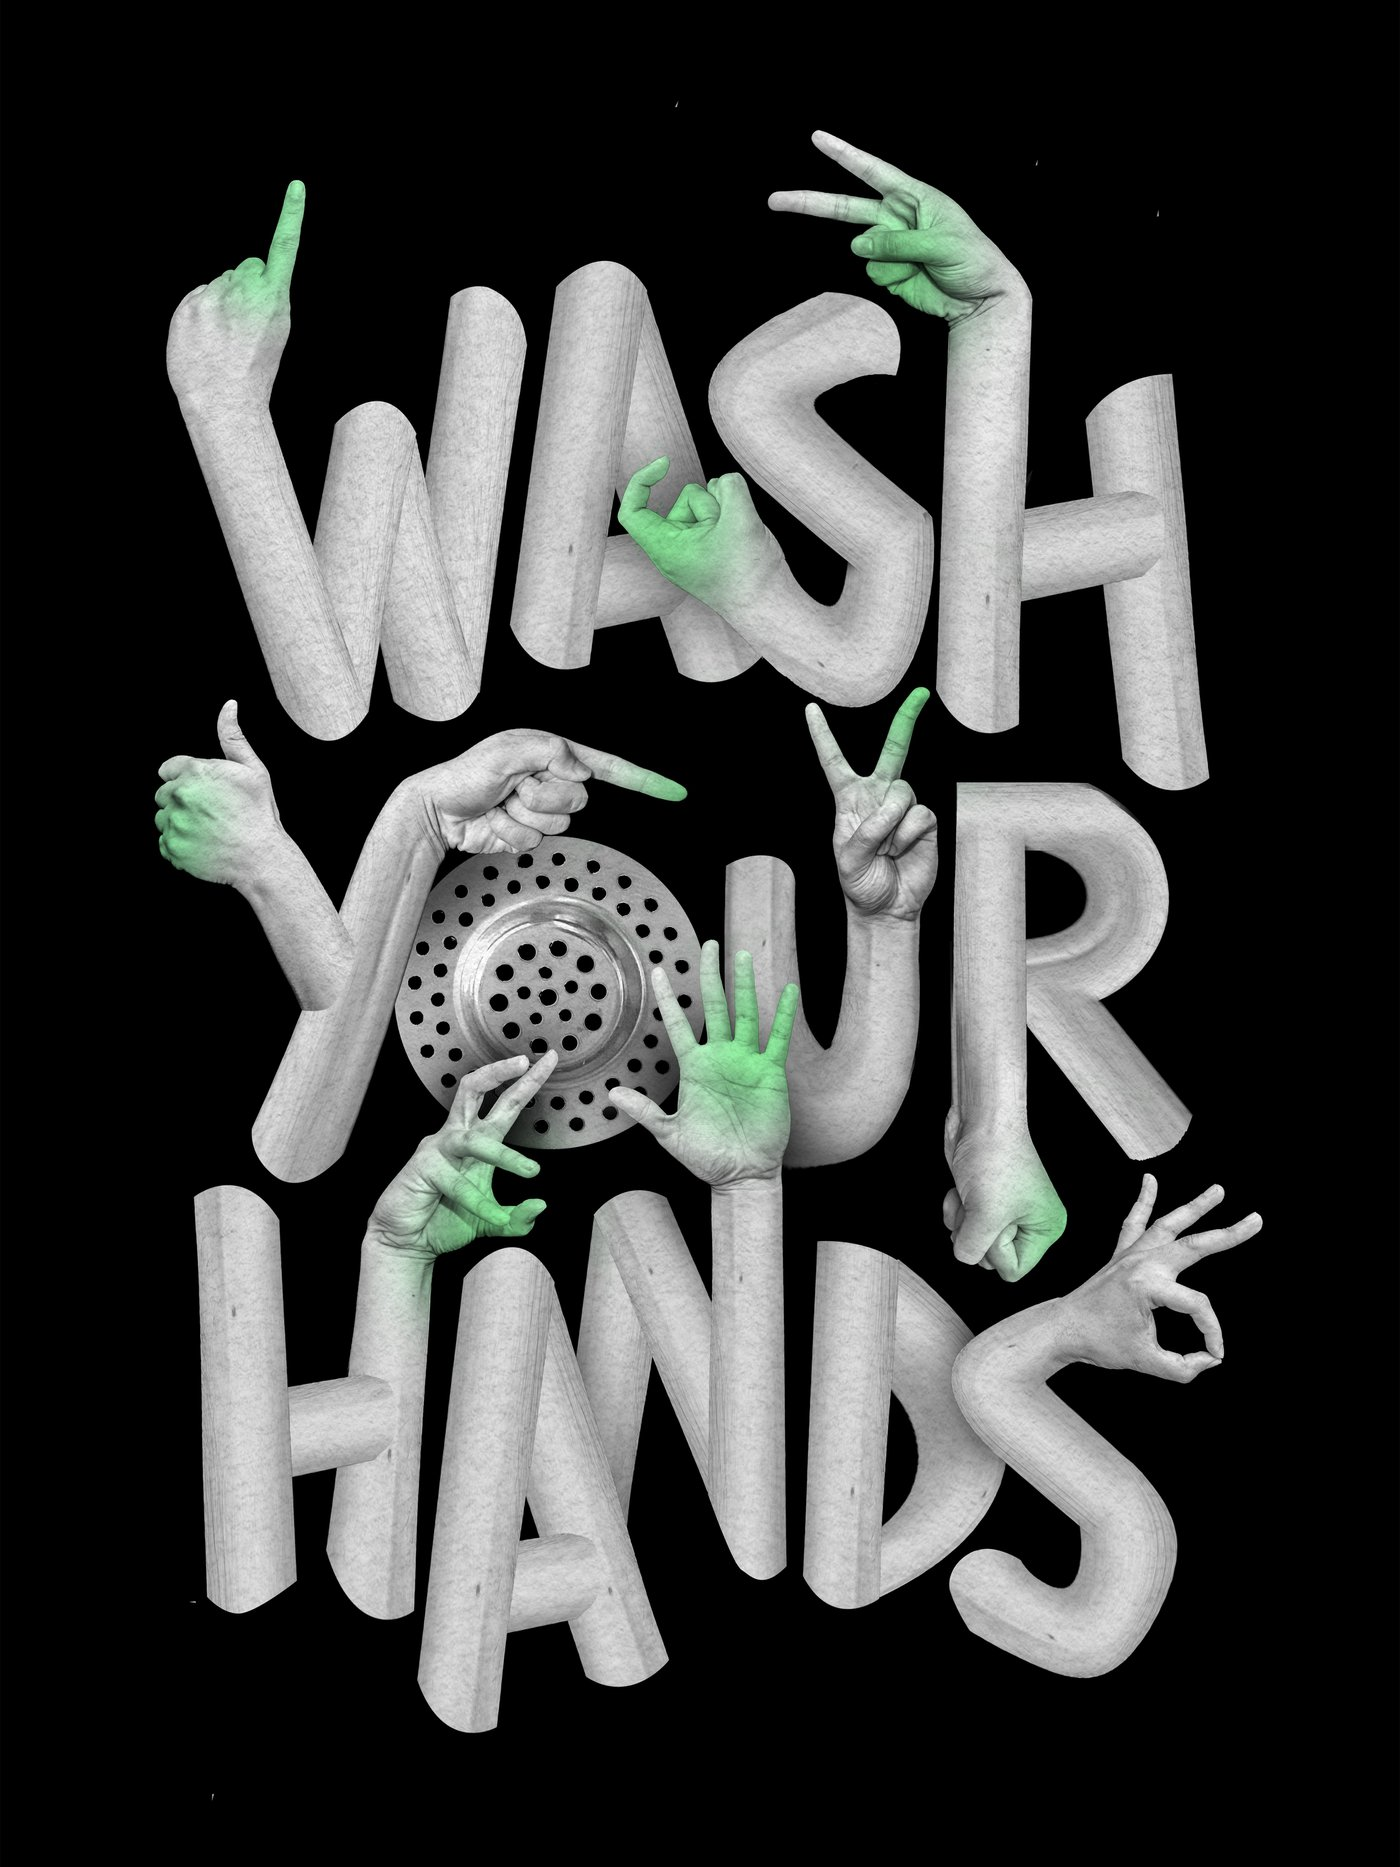 """Over a black background, the words """"wash your hands"""" appear. Coming from different points on the letters are hands in various shapes, such as a peace sign or pointing. The """"O"""" in Your is a sink drain."""